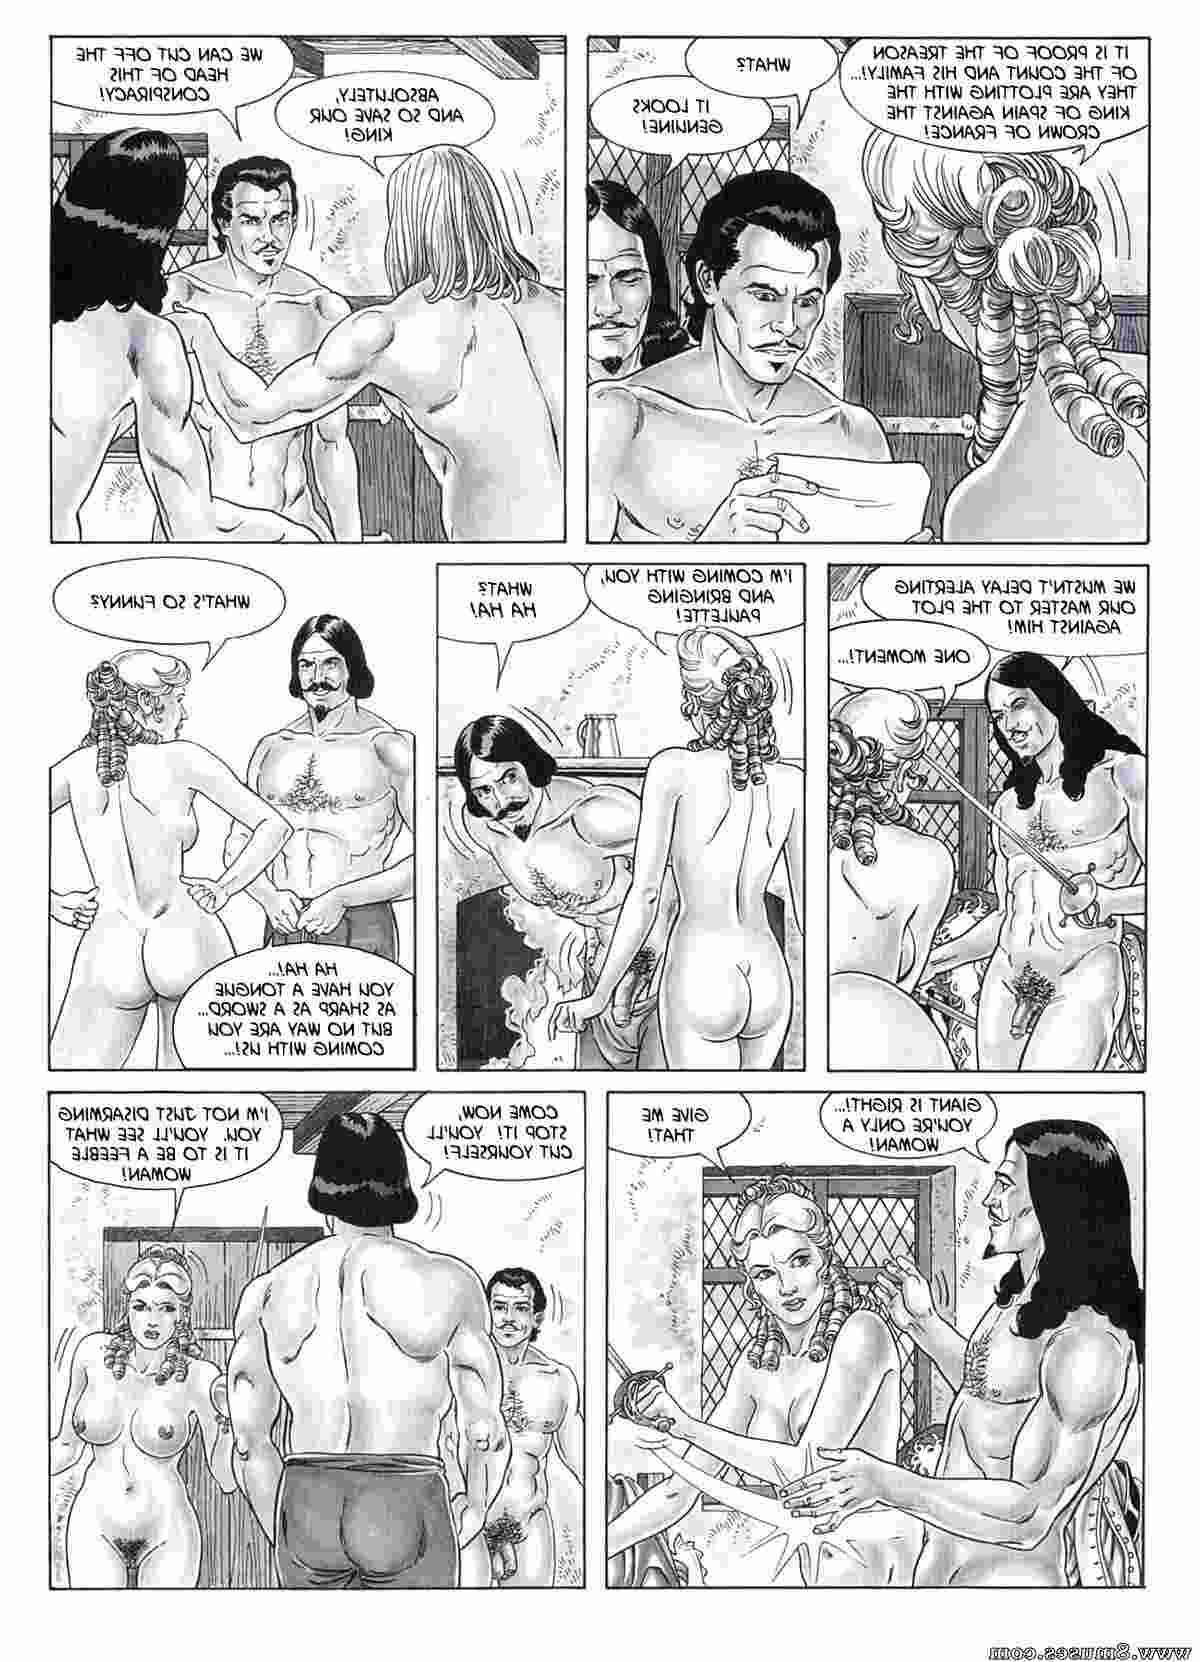 Stramaglia-Morale-Comics/Impetuous-Amber Impetuous_Amber__8muses_-_Sex_and_Porn_Comics_45.jpg